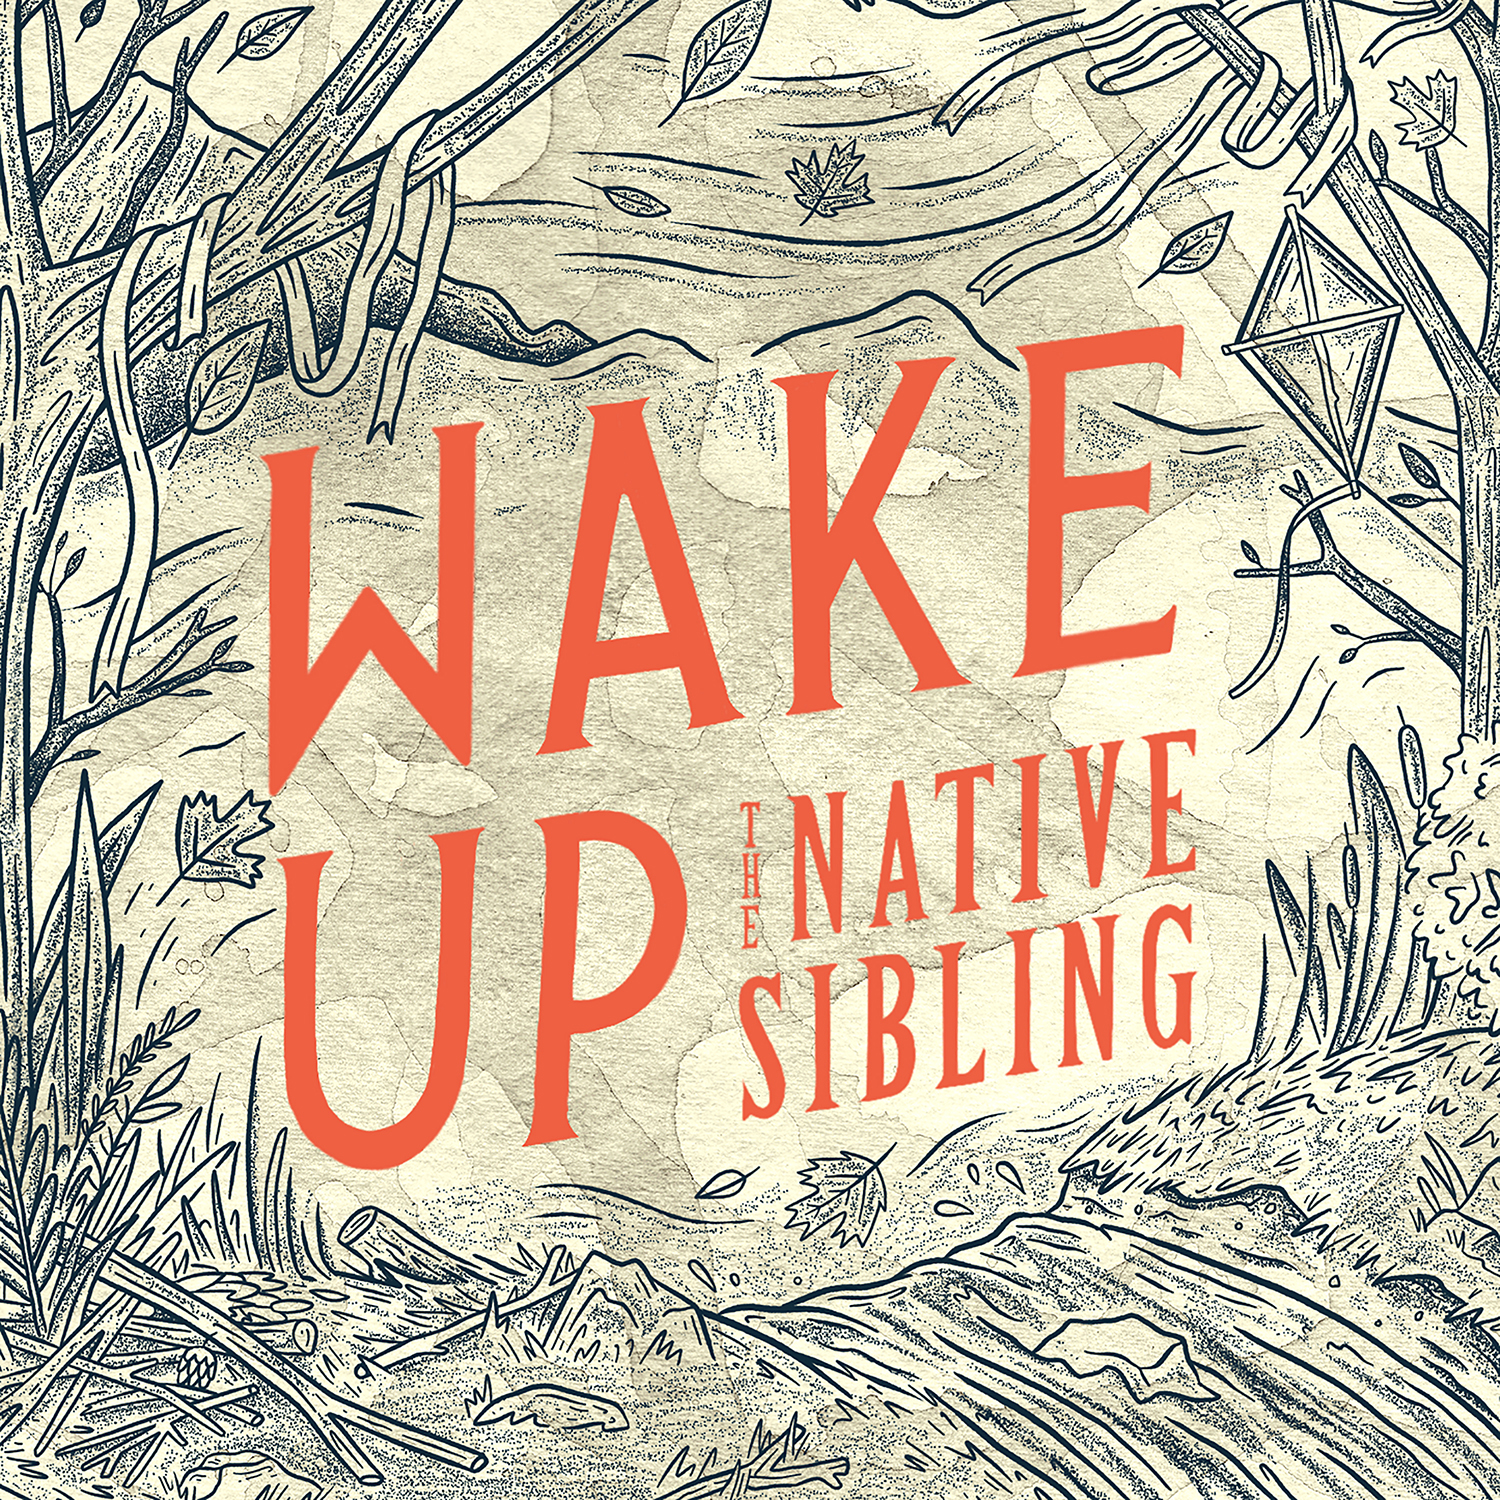 native_sibling_wake_up_1500.jpg